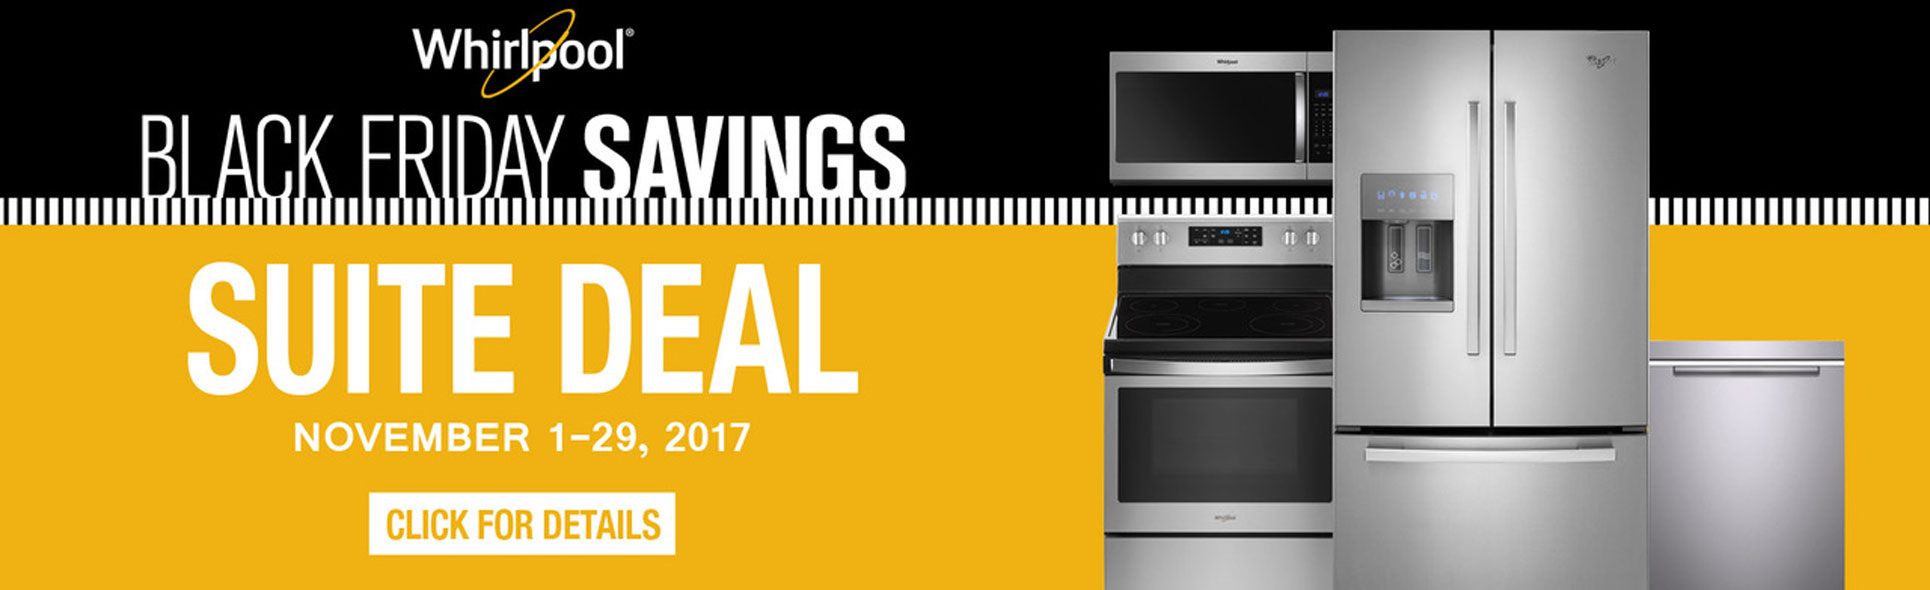 Whirlpool Black Friday Suite Deals